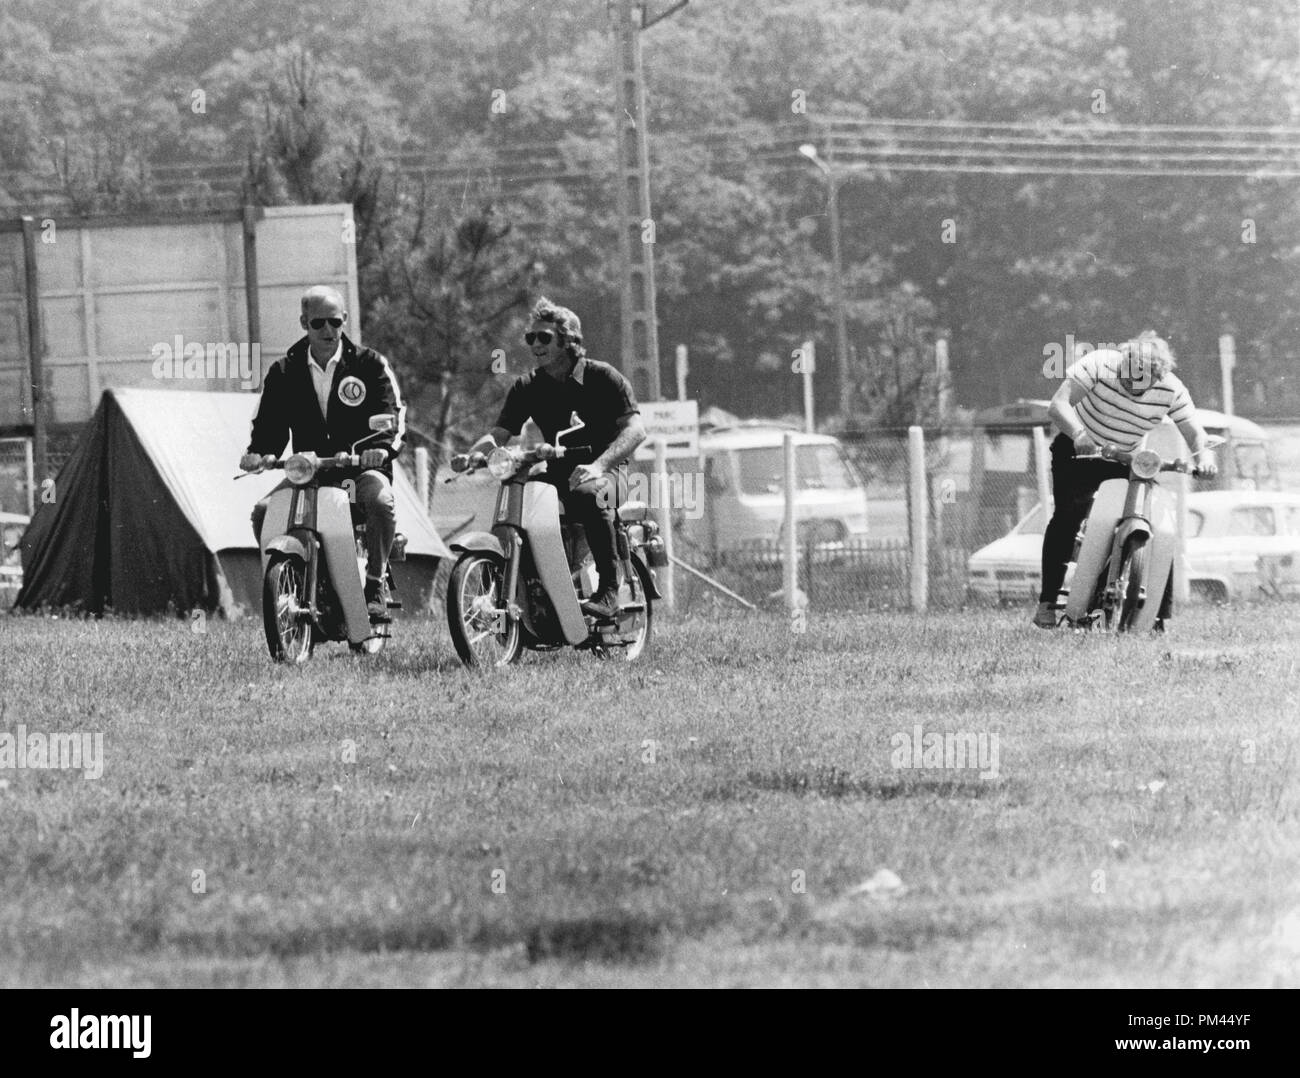 Steve McQueen indulging in one of his favorite pastimes, riding a motorcycle during a break in filming 'Le Mans' June1969. File Reference #1028_027THA © JRC /The Hollywood Archive - All Rights Reserved. - Stock Image